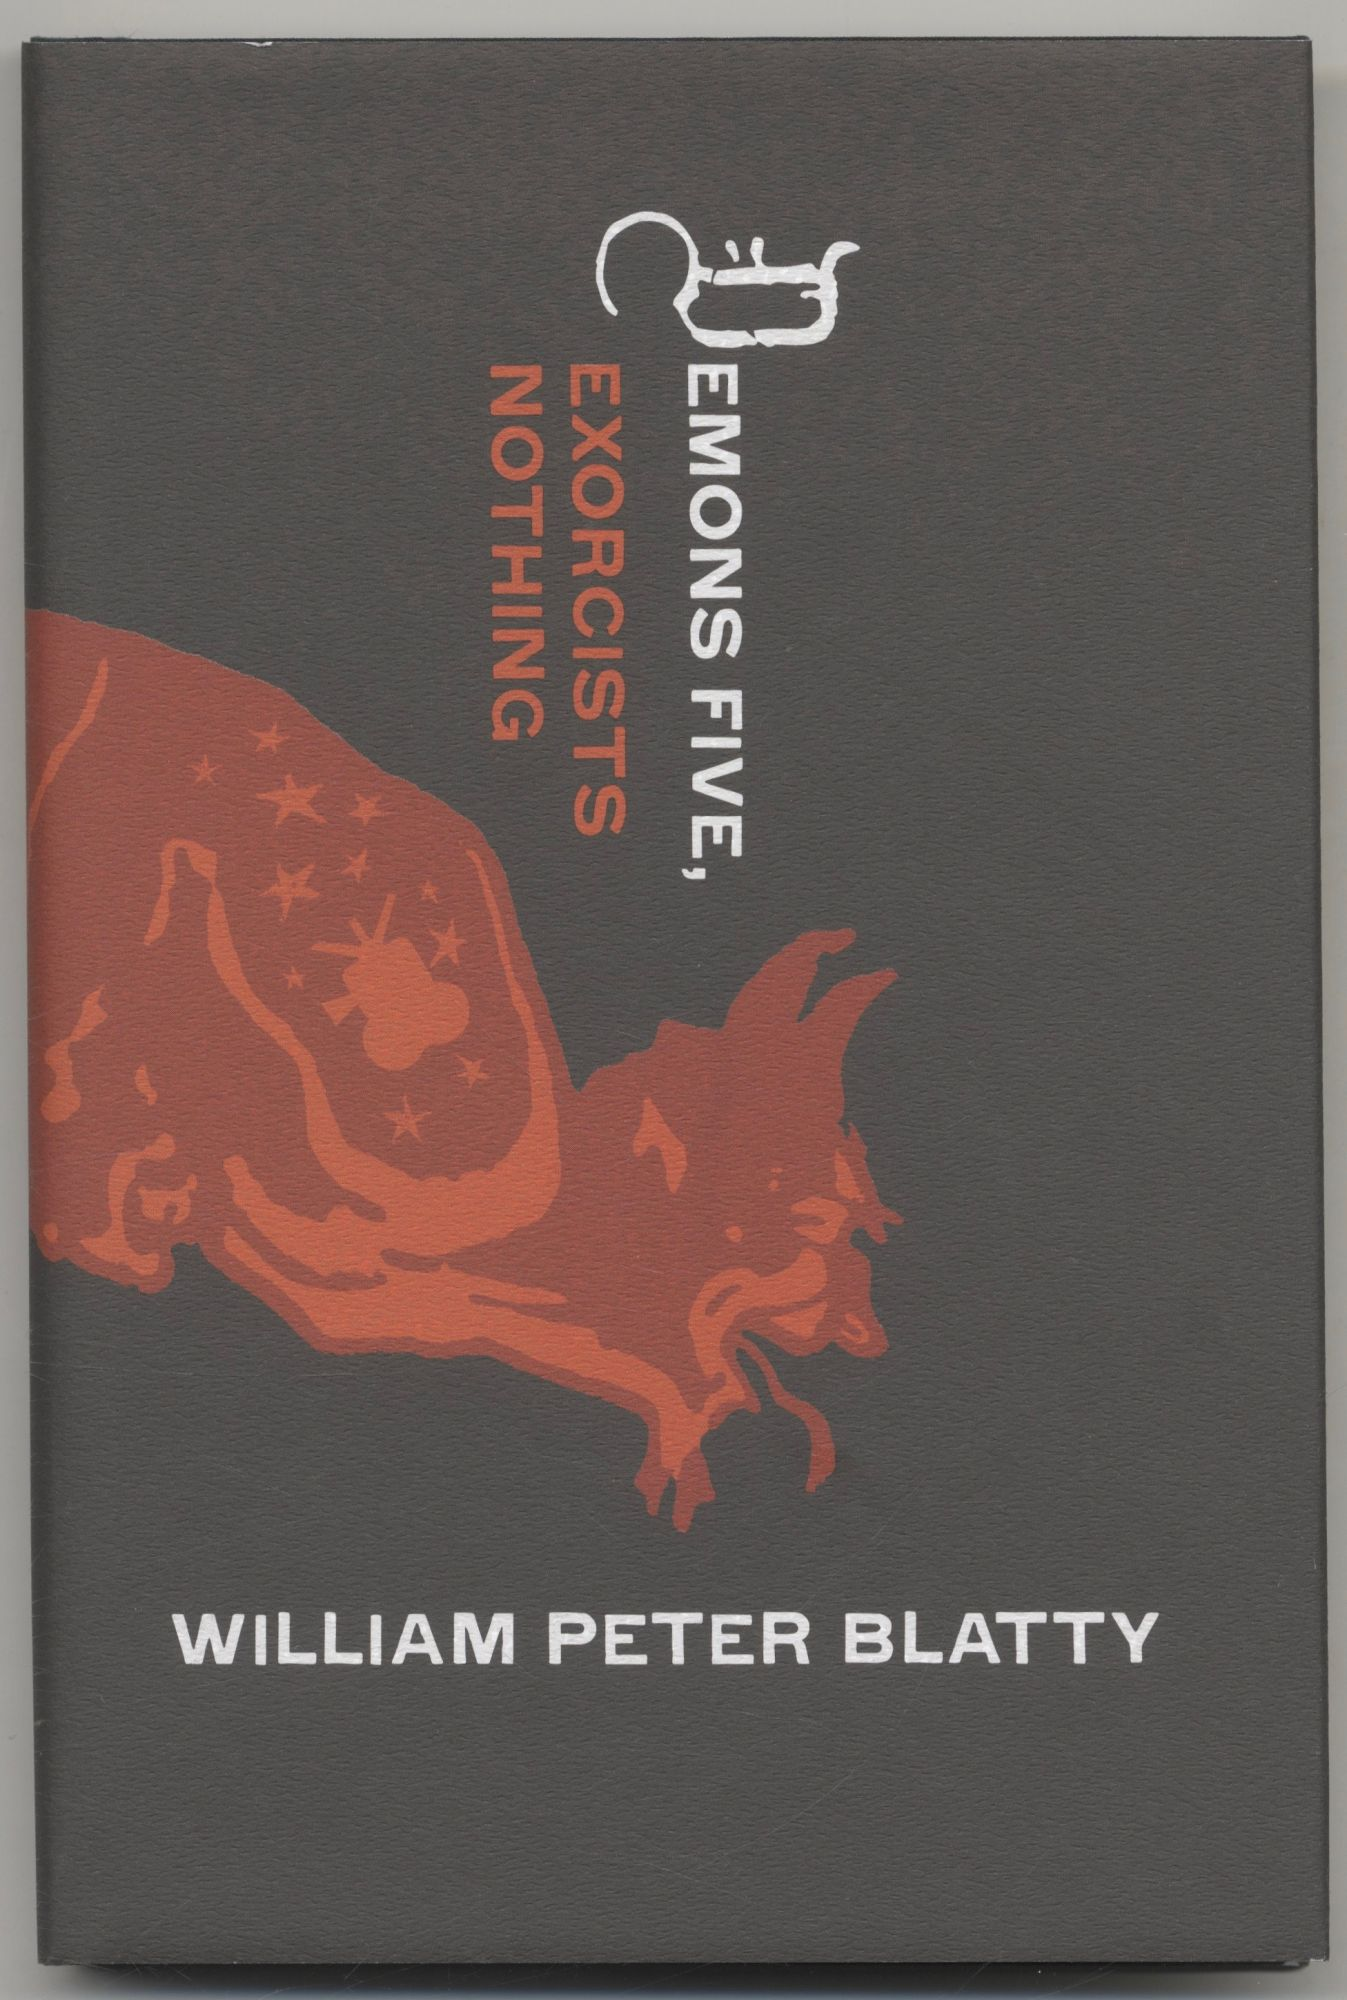 Demons Five, Exorcists Nothing - Signed Limited Edition. William Peter Blatty.